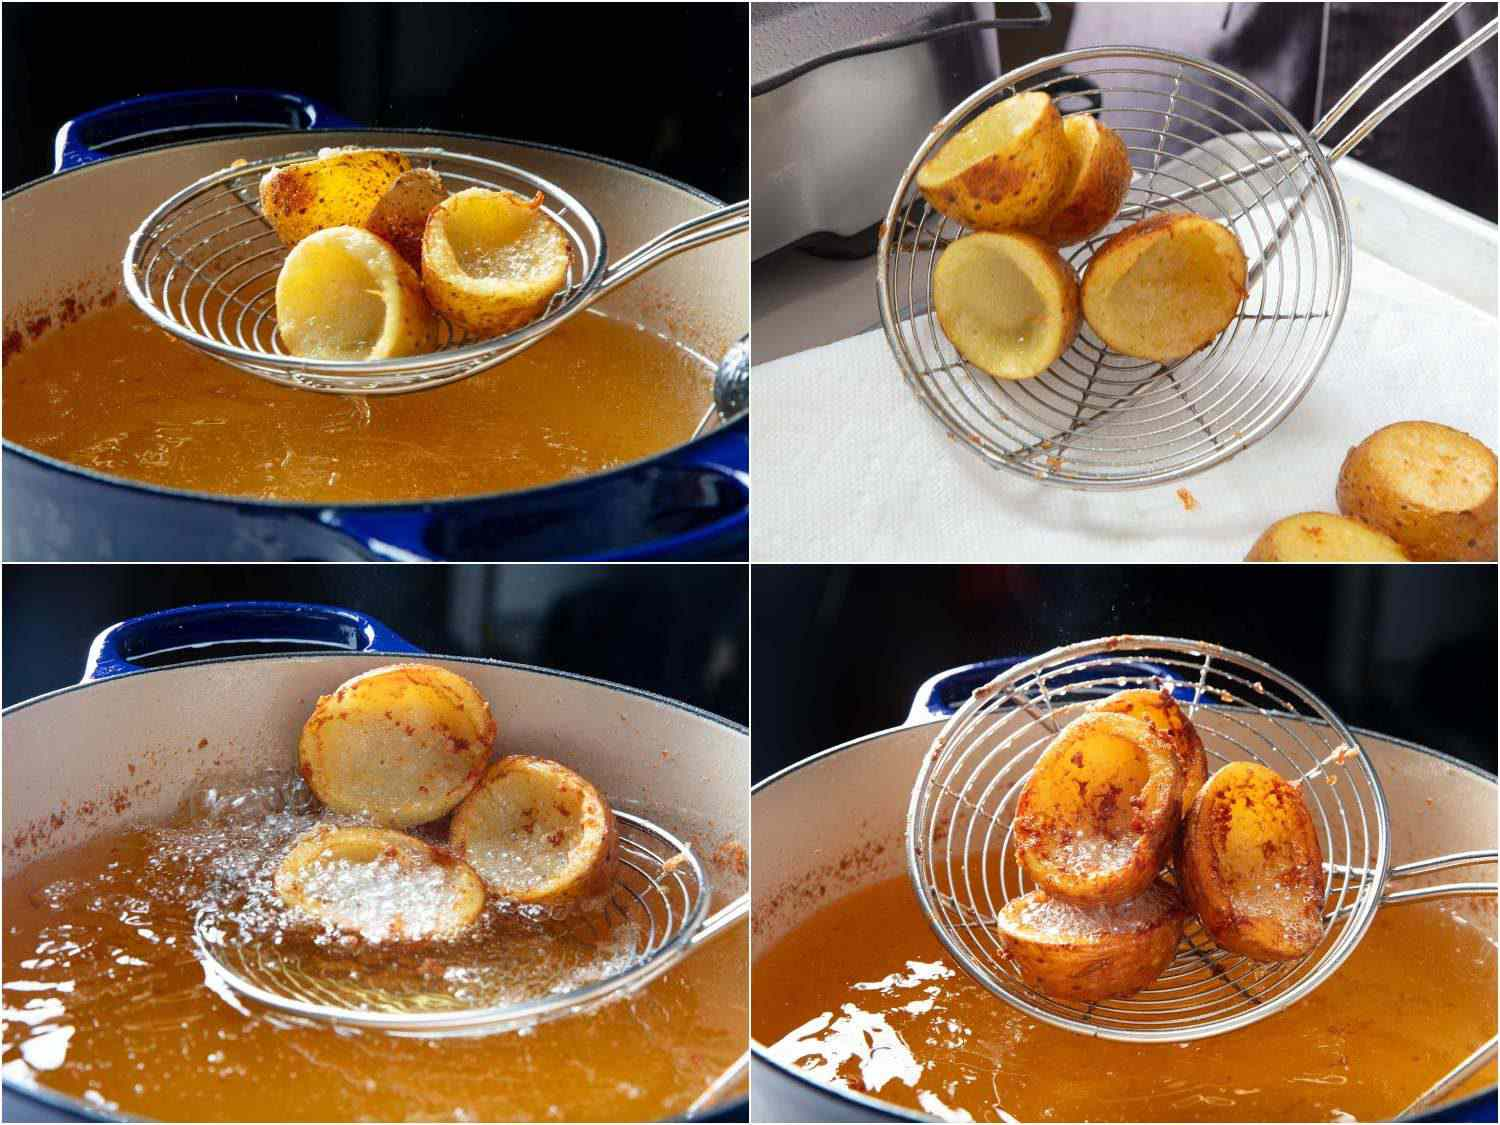 Deep-frying the potato-skin cups in two stages, first for just a minute, the second time until deeply browned and crispy all over